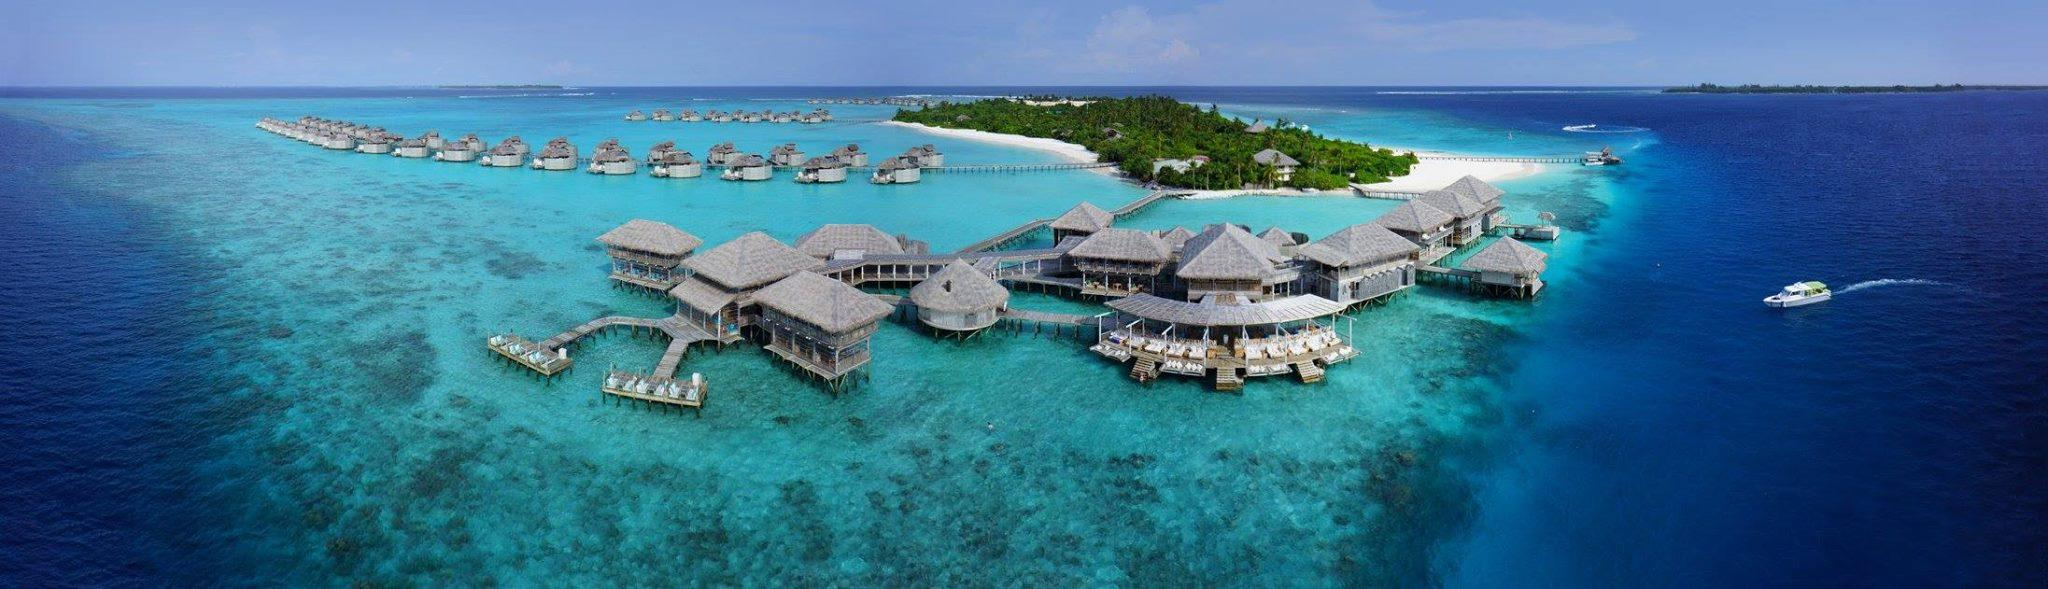 Six Senses Laamu - UPDATED 2017 Resort Reviews & Price Comparison ...